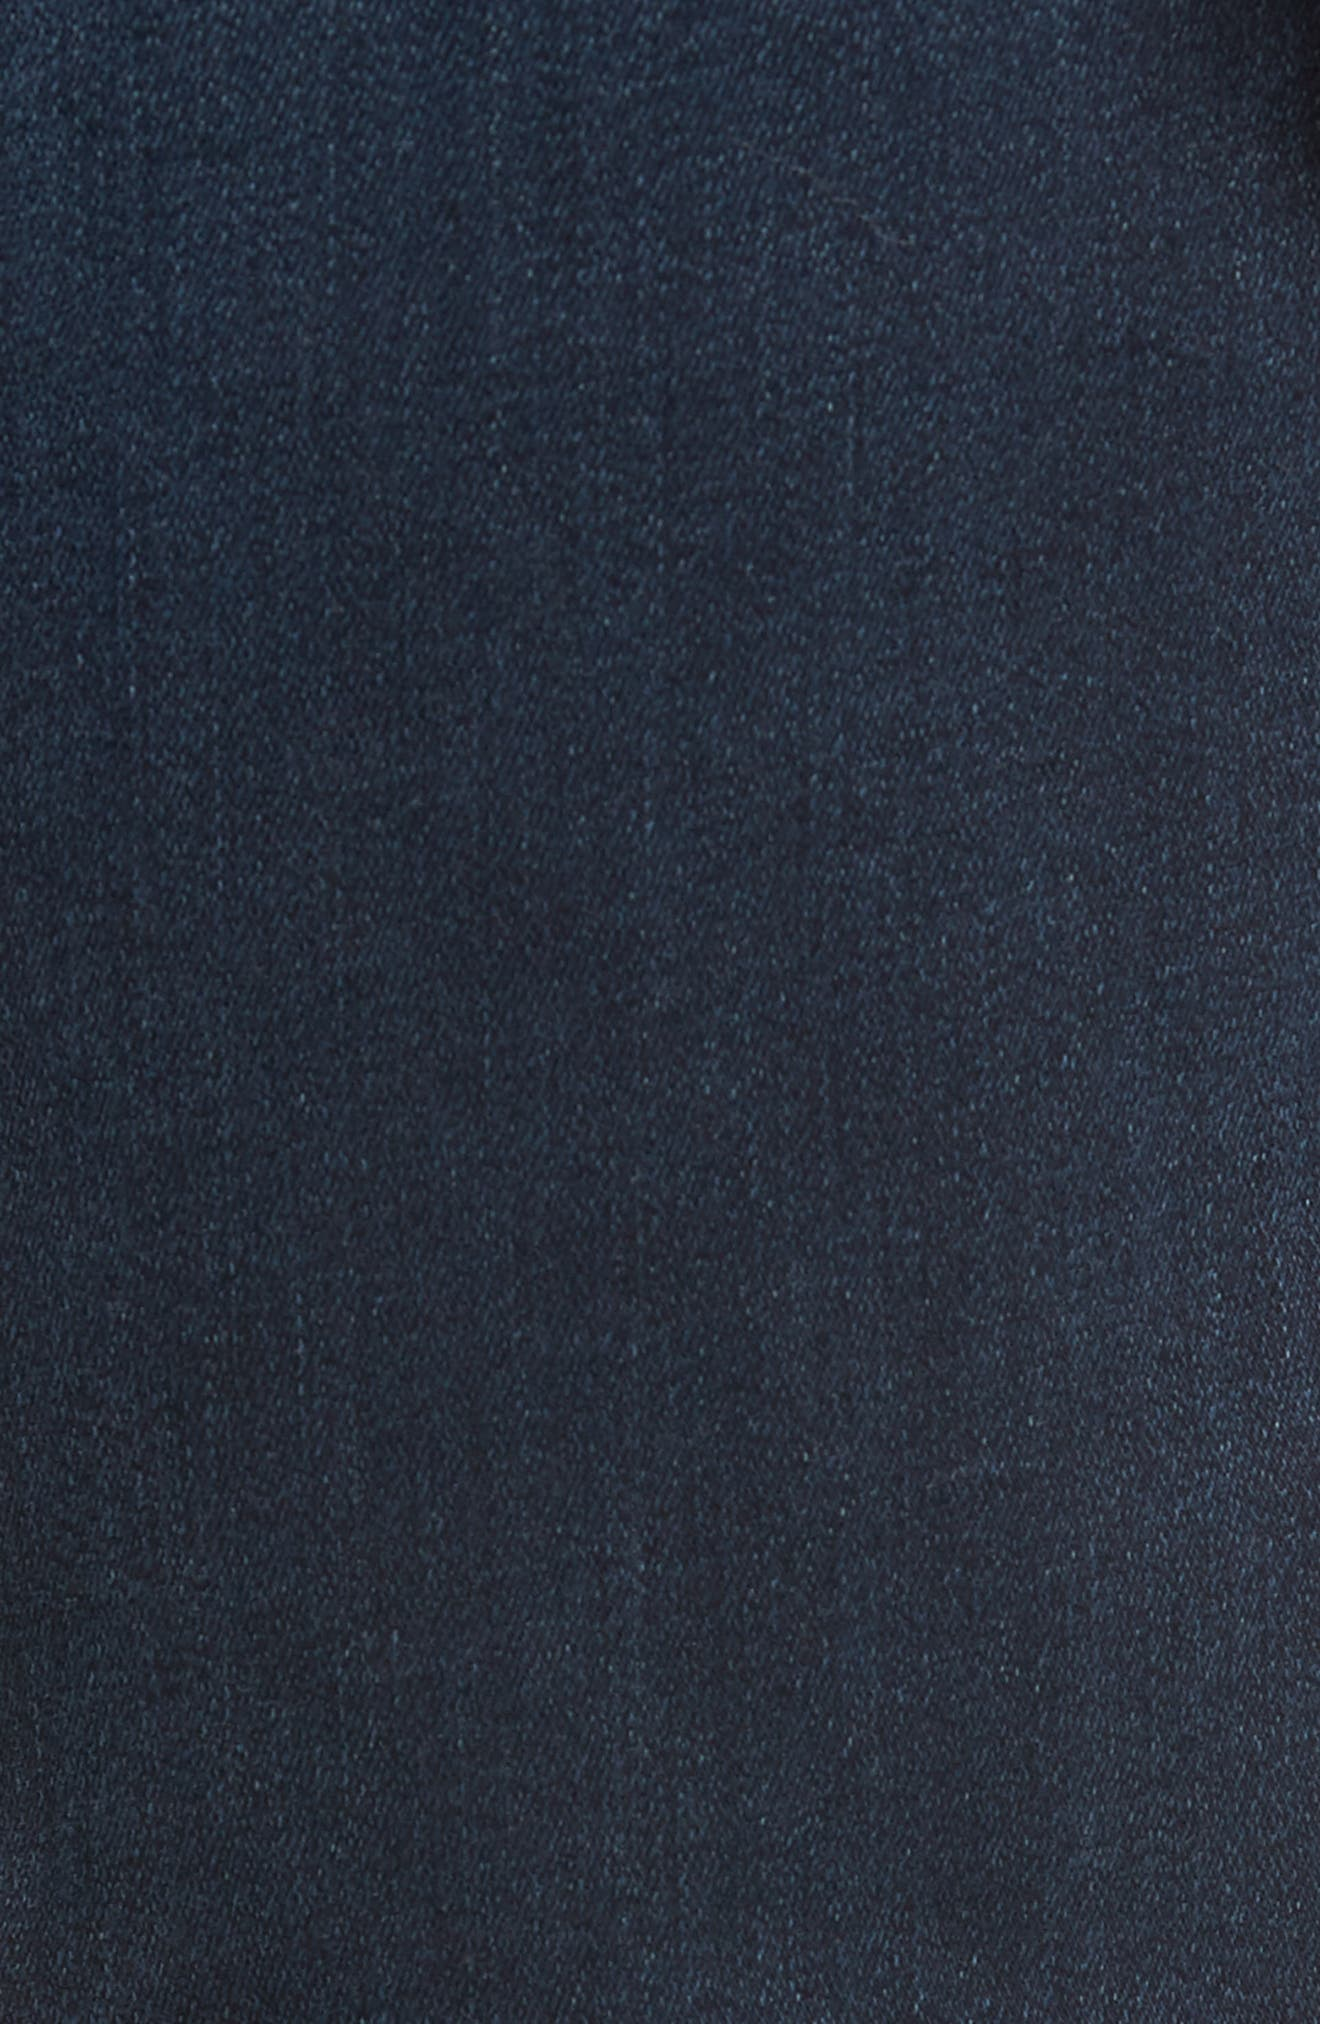 50-11 Relaxed Fit Jeans,                             Alternate thumbnail 5, color,                             MILLI BLUE